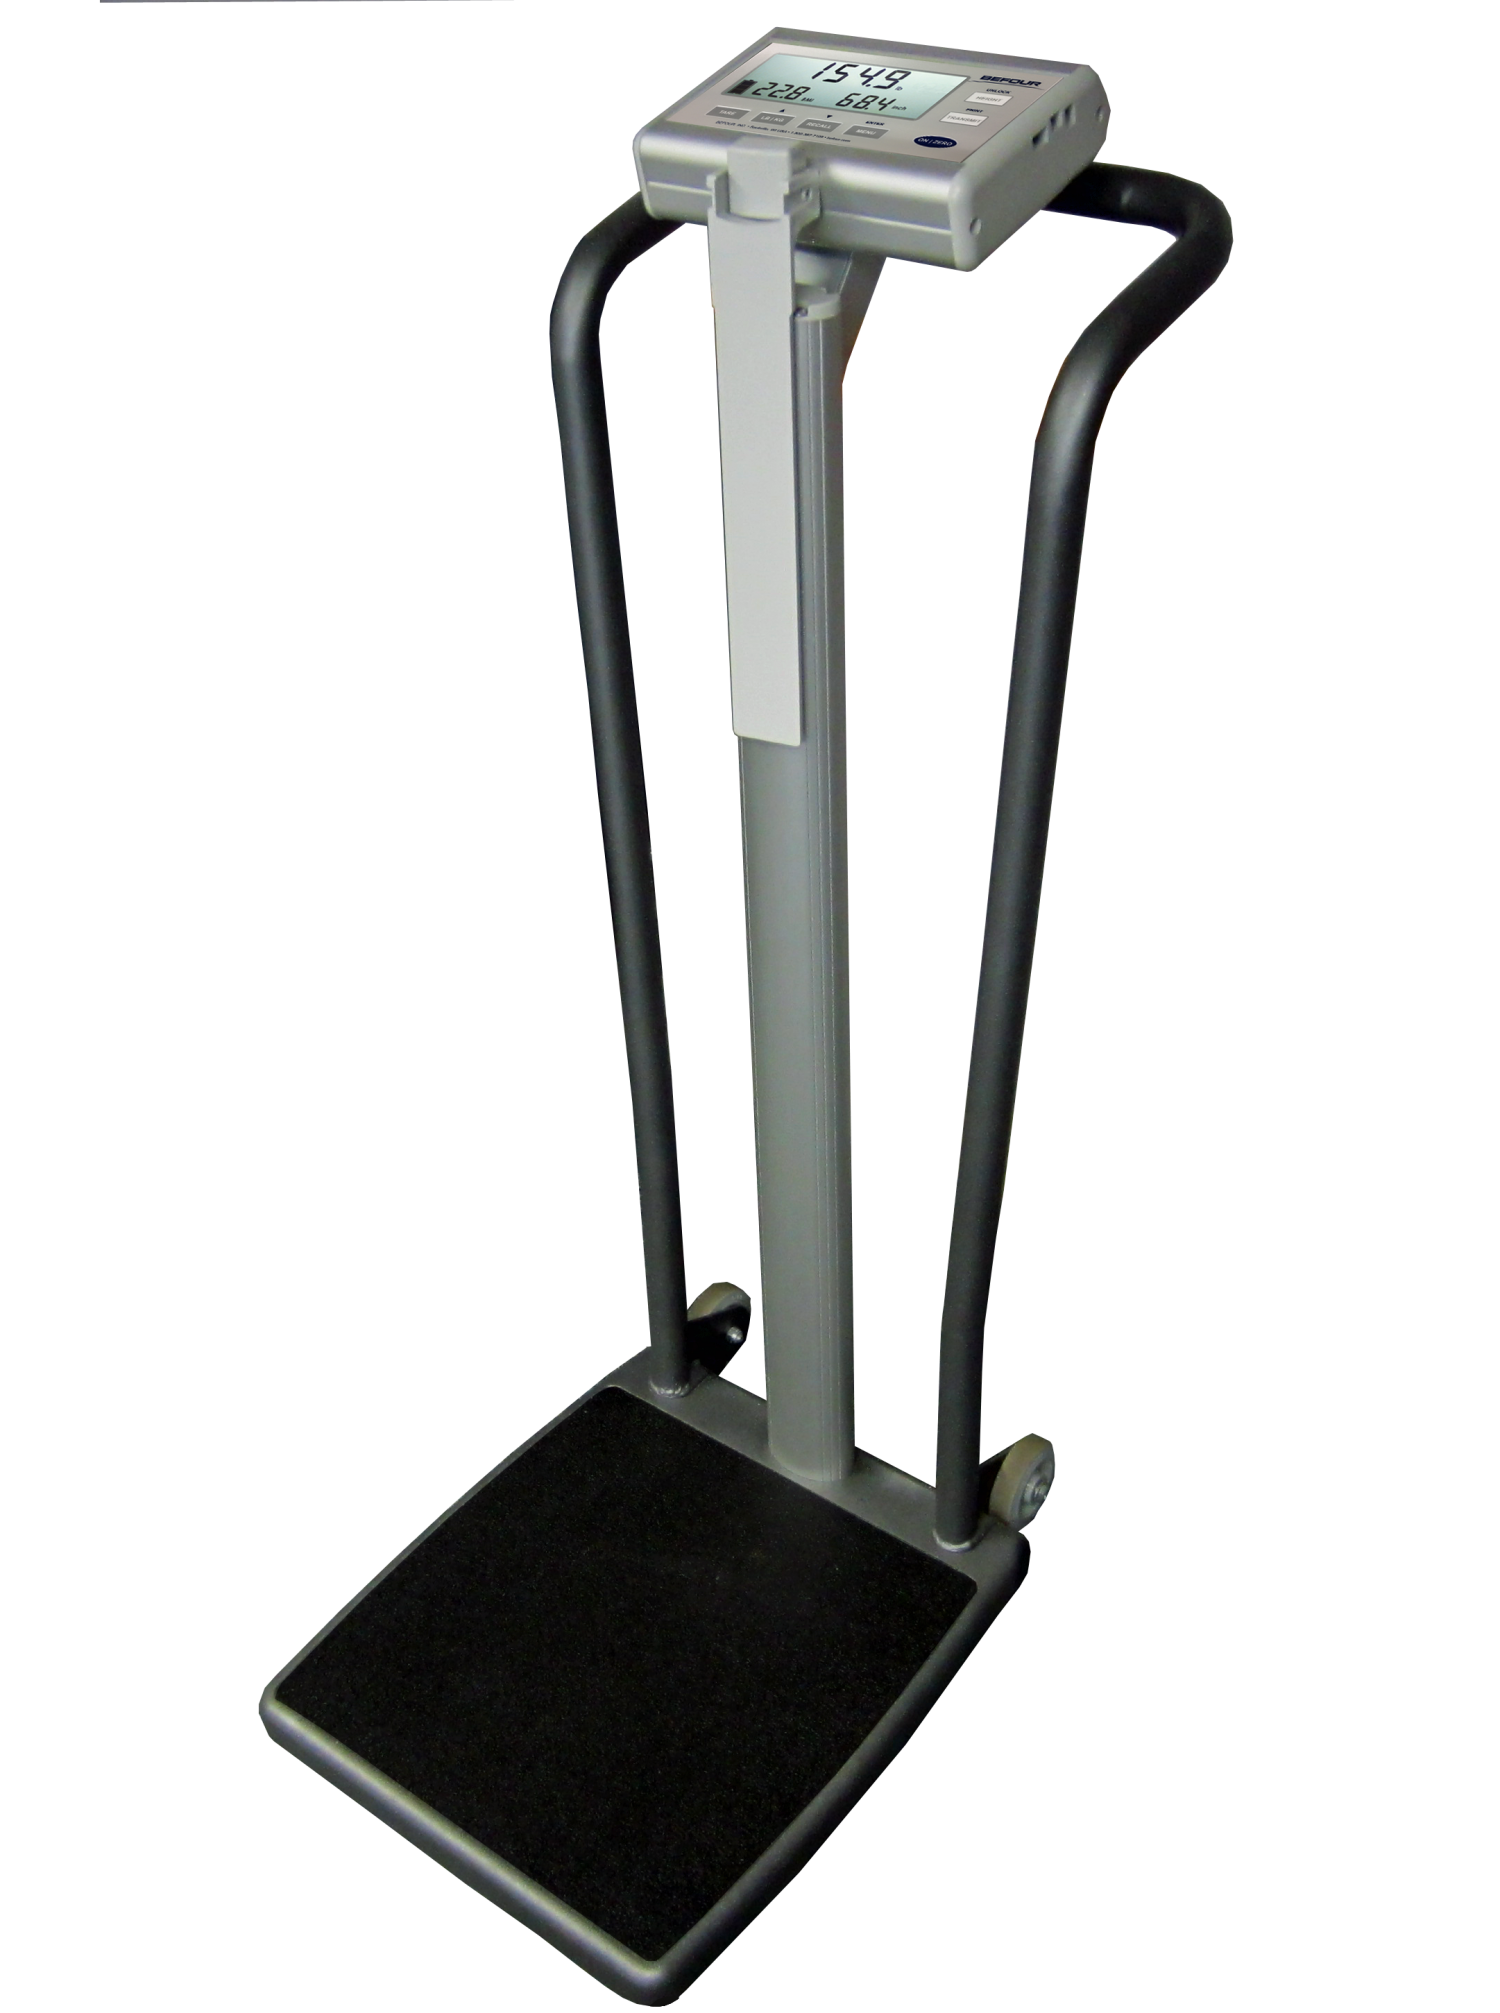 WH-1070 - Tilt & Roll Handrail Scale with Digital Height Rod for Sports and Fitness